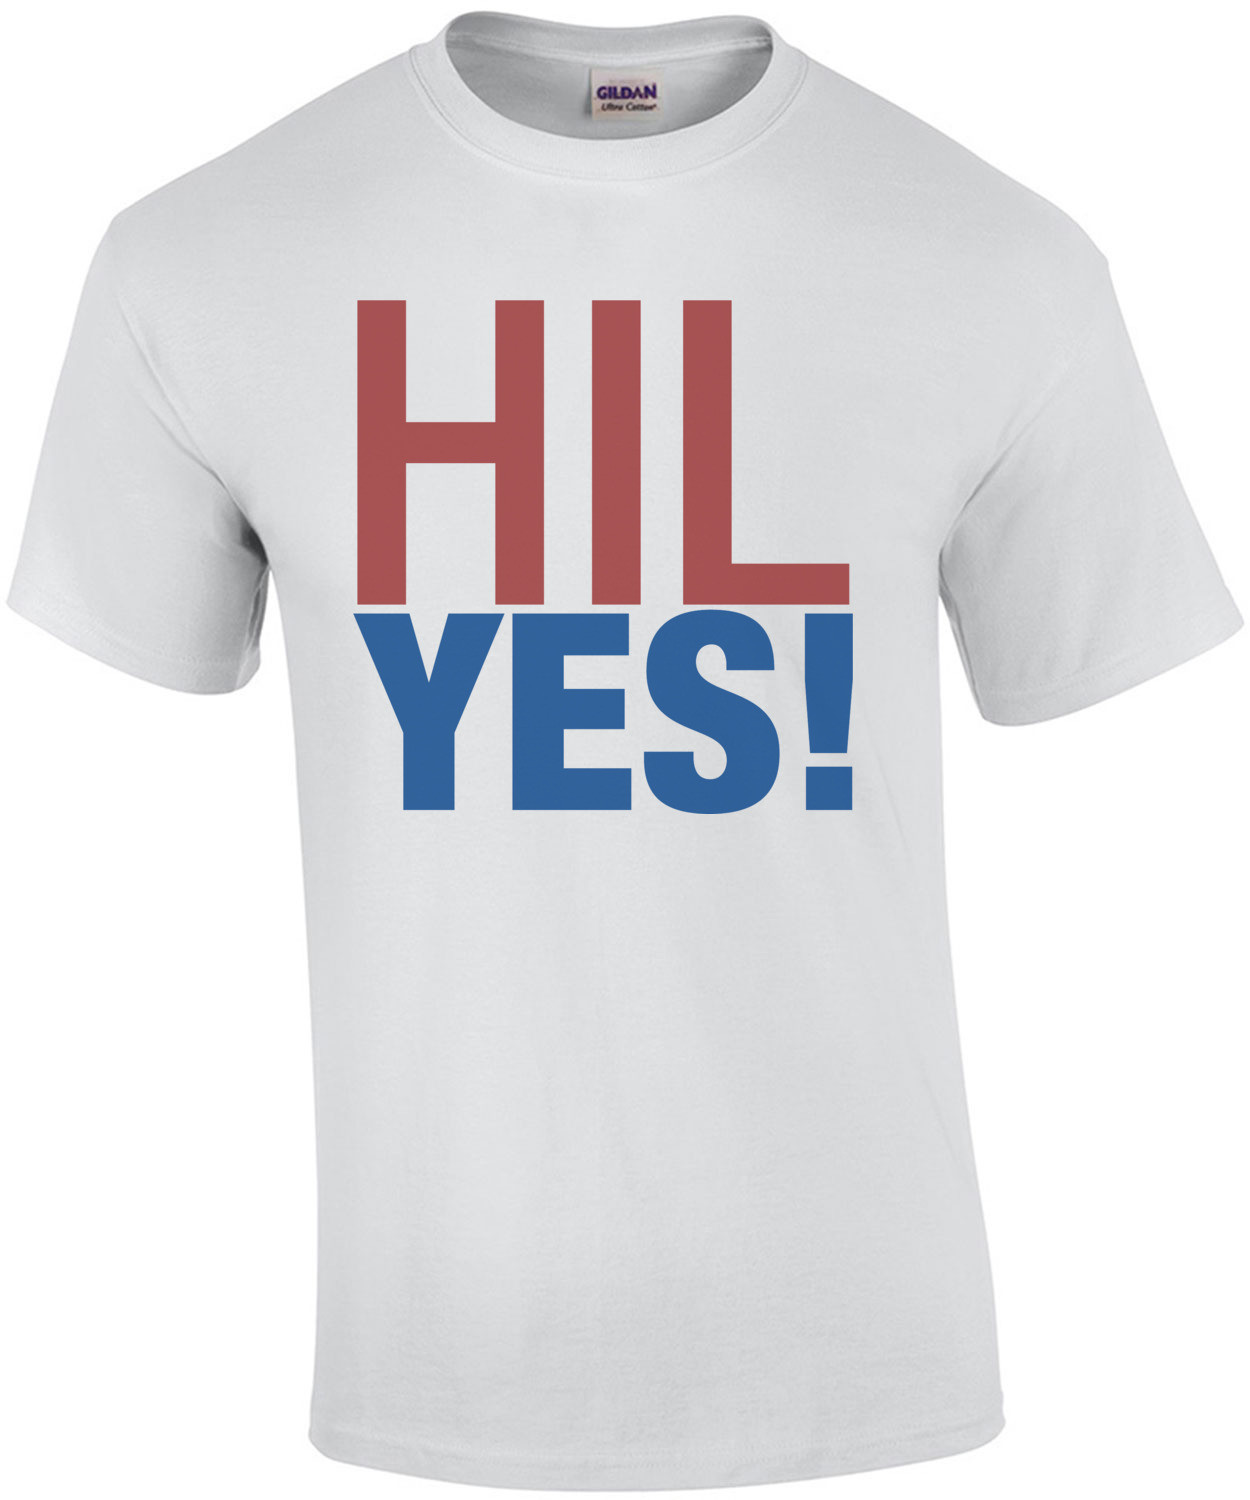 Hill Yes T-Shirt